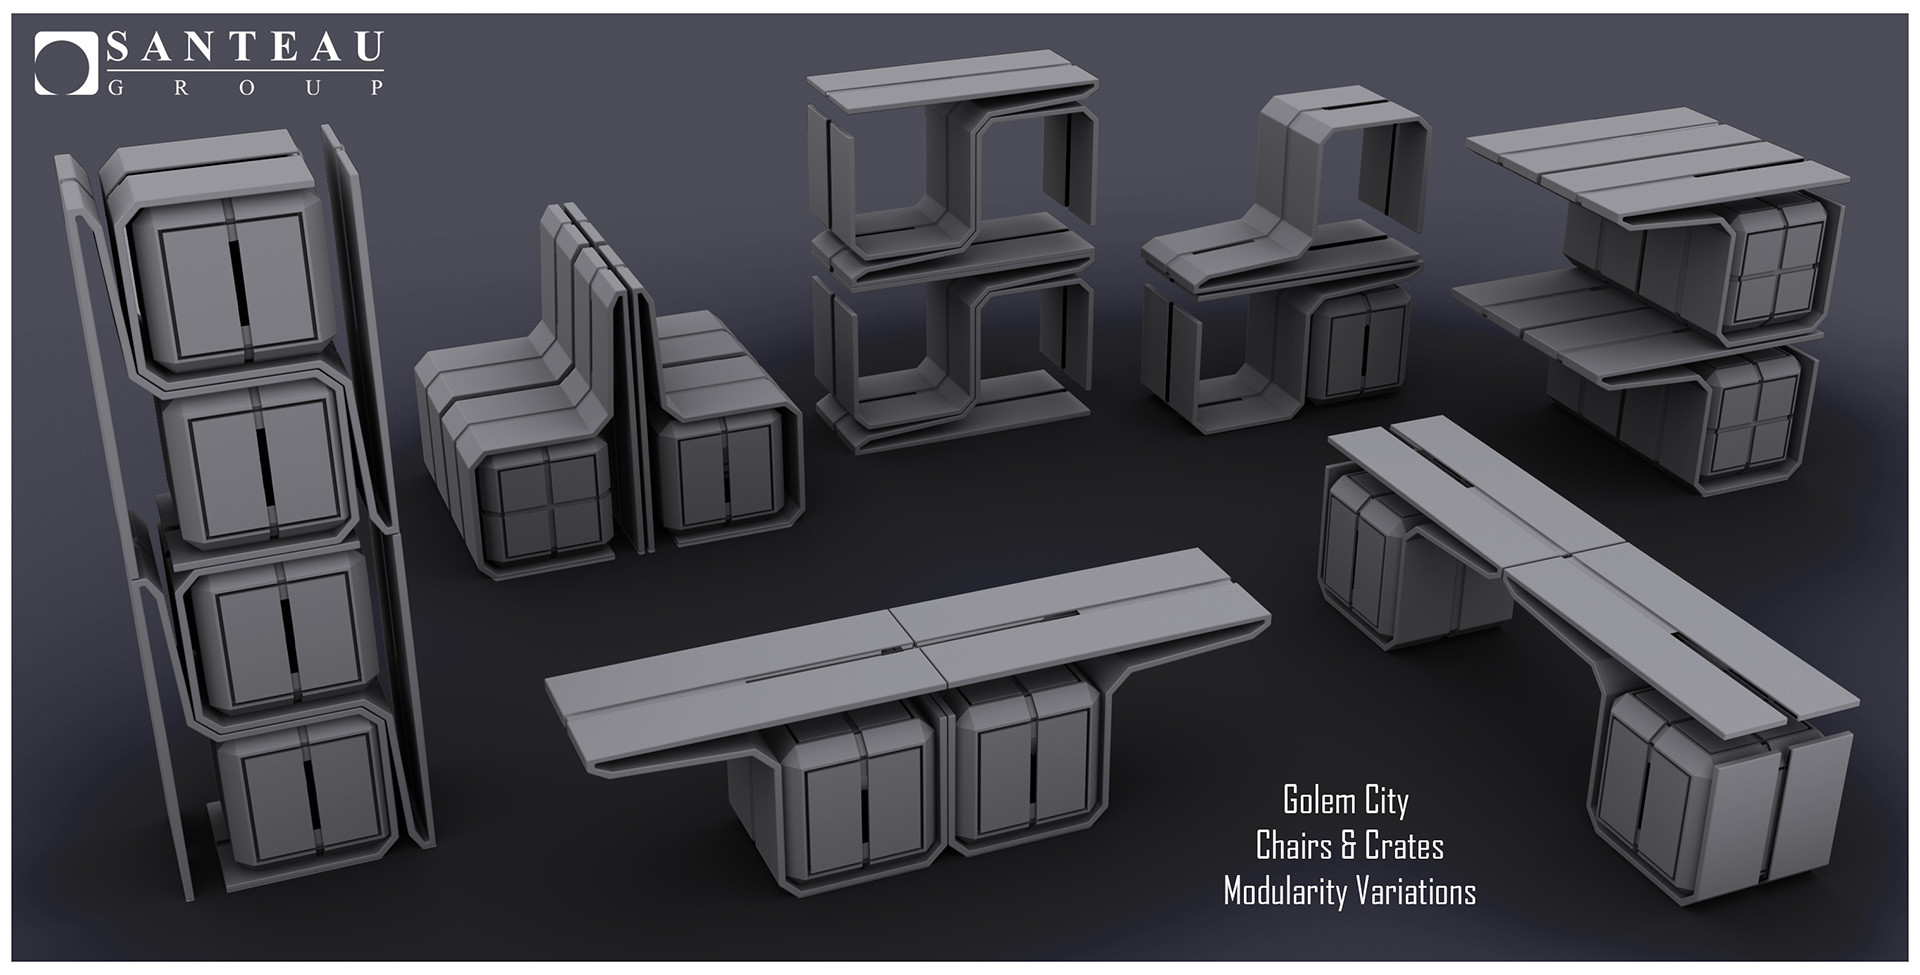 https://cdnb.artstation.com/p/assets/images/images/003/434/373/large/mathieu-latour-duhaime-golem-chair-and-crate-modularity.jpg?1473645851